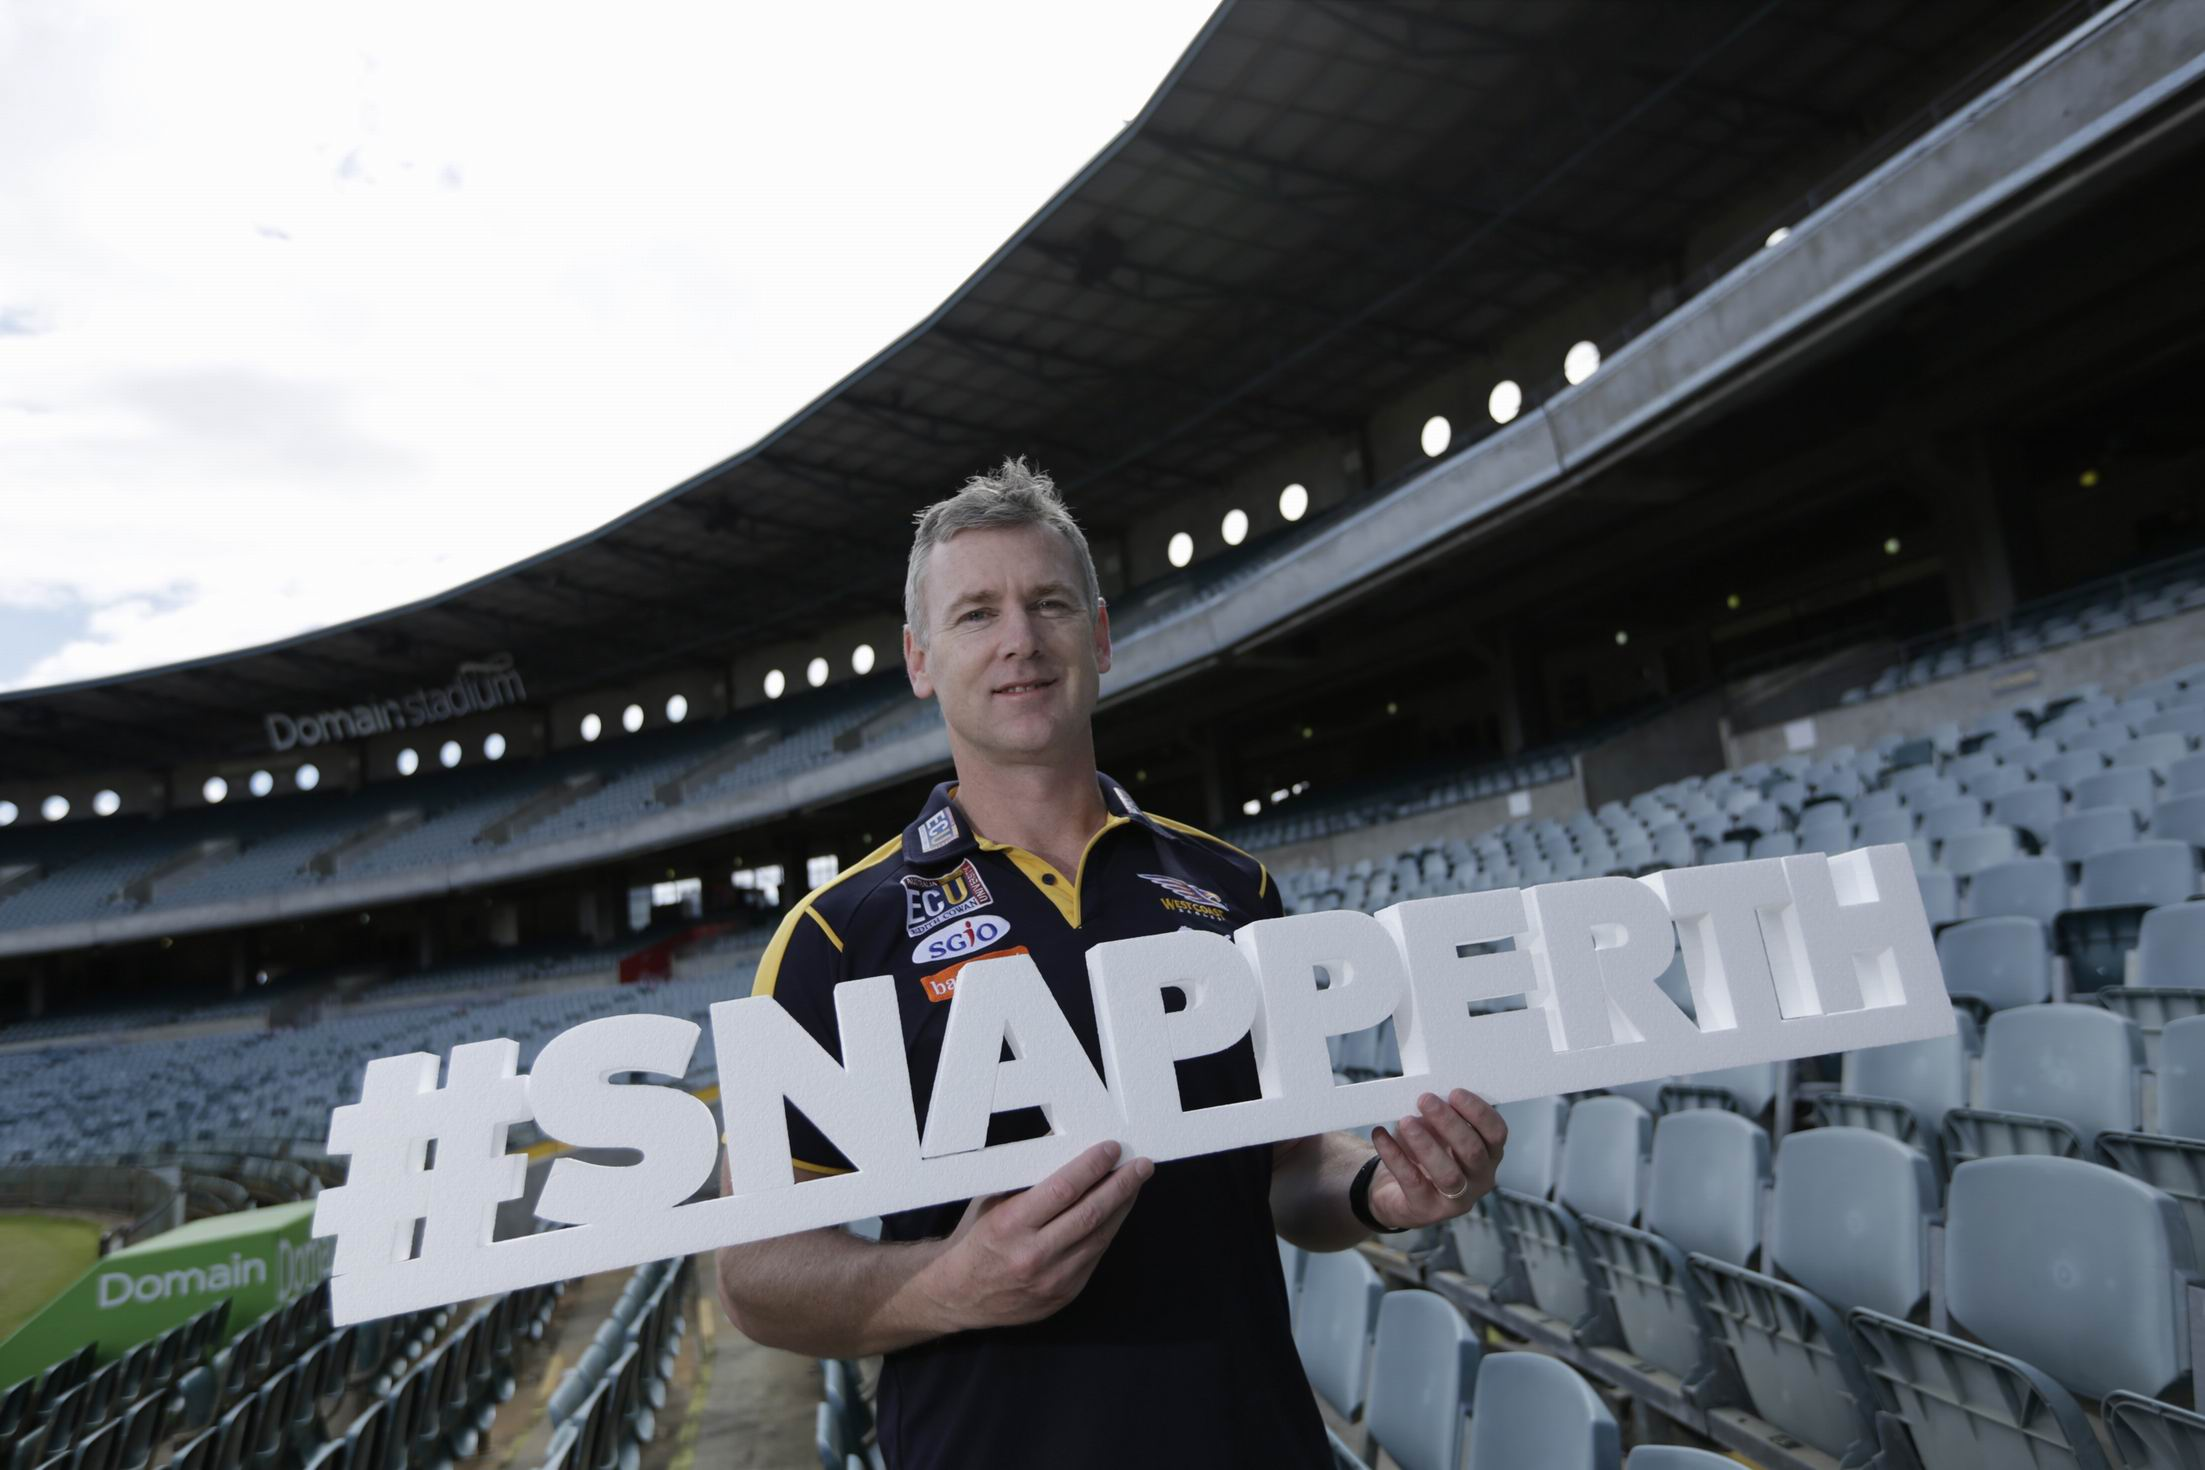 West |Coast Eagles coach Adam Simpson discusses what he loves as part #SnapPerth 2016.